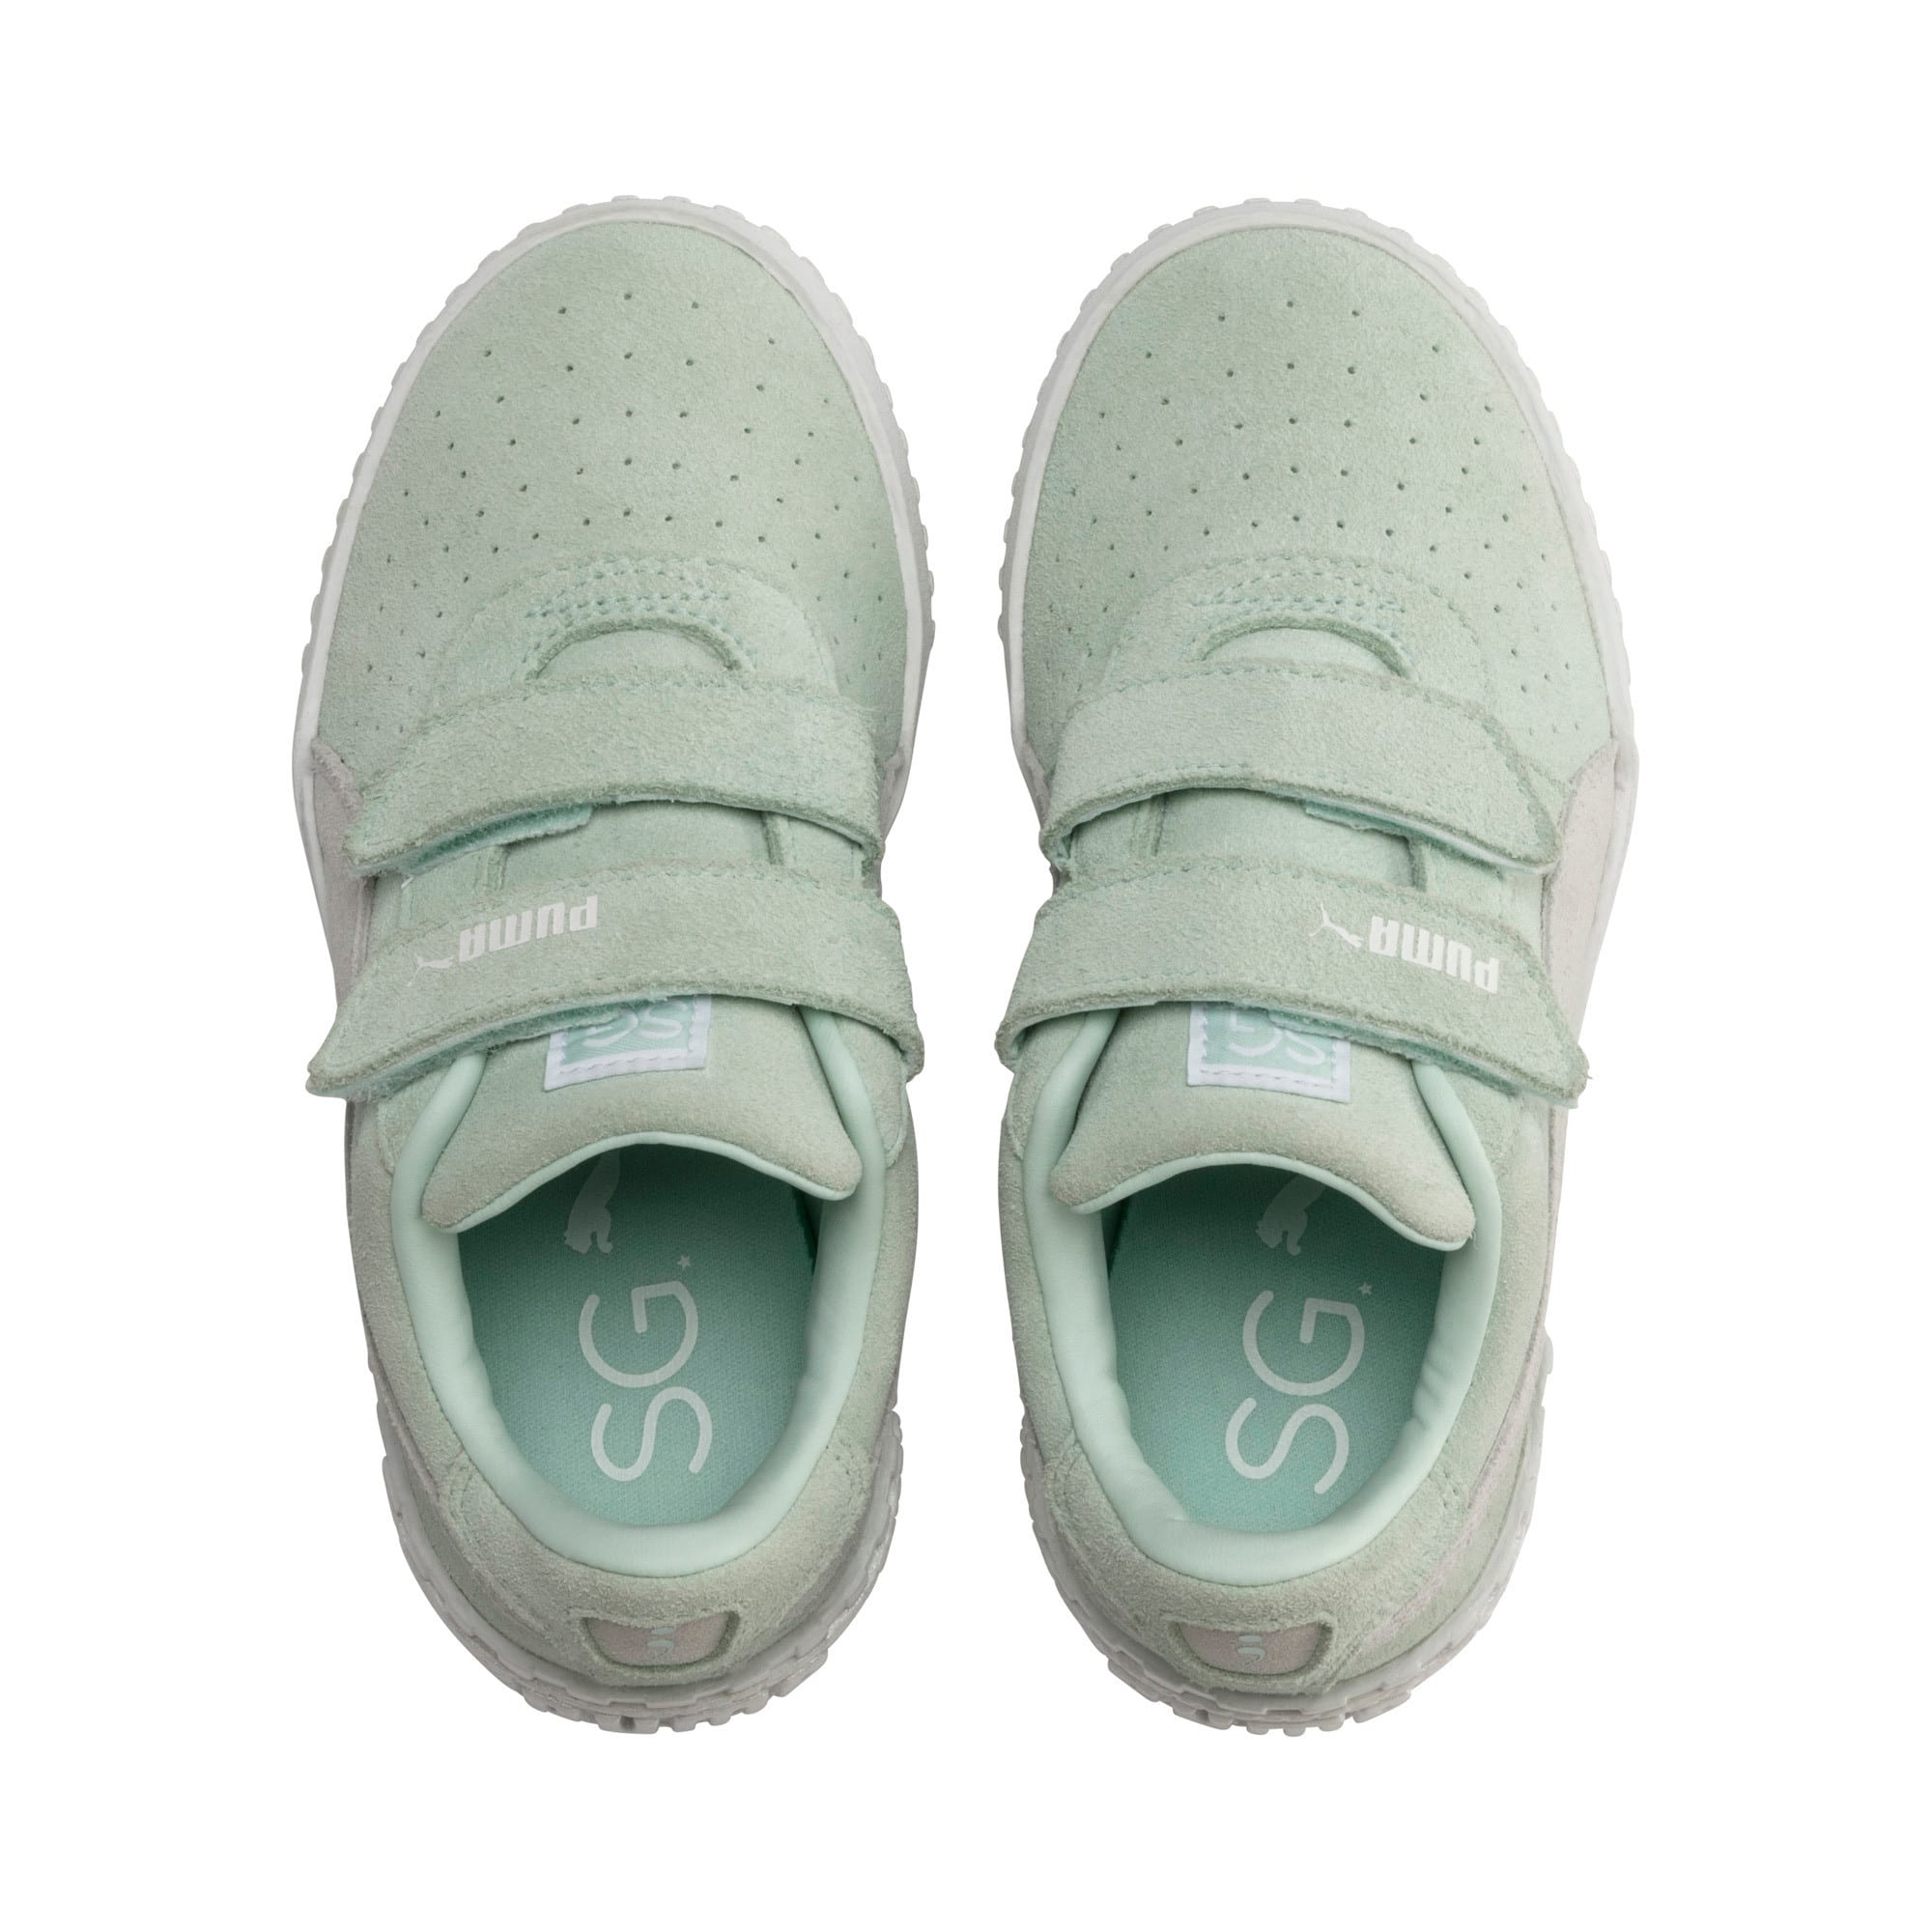 Thumbnail 6 of PUMA x Selena Gomez Kids' Cali Patent Trainers, Fair Aqua-Puma White, medium